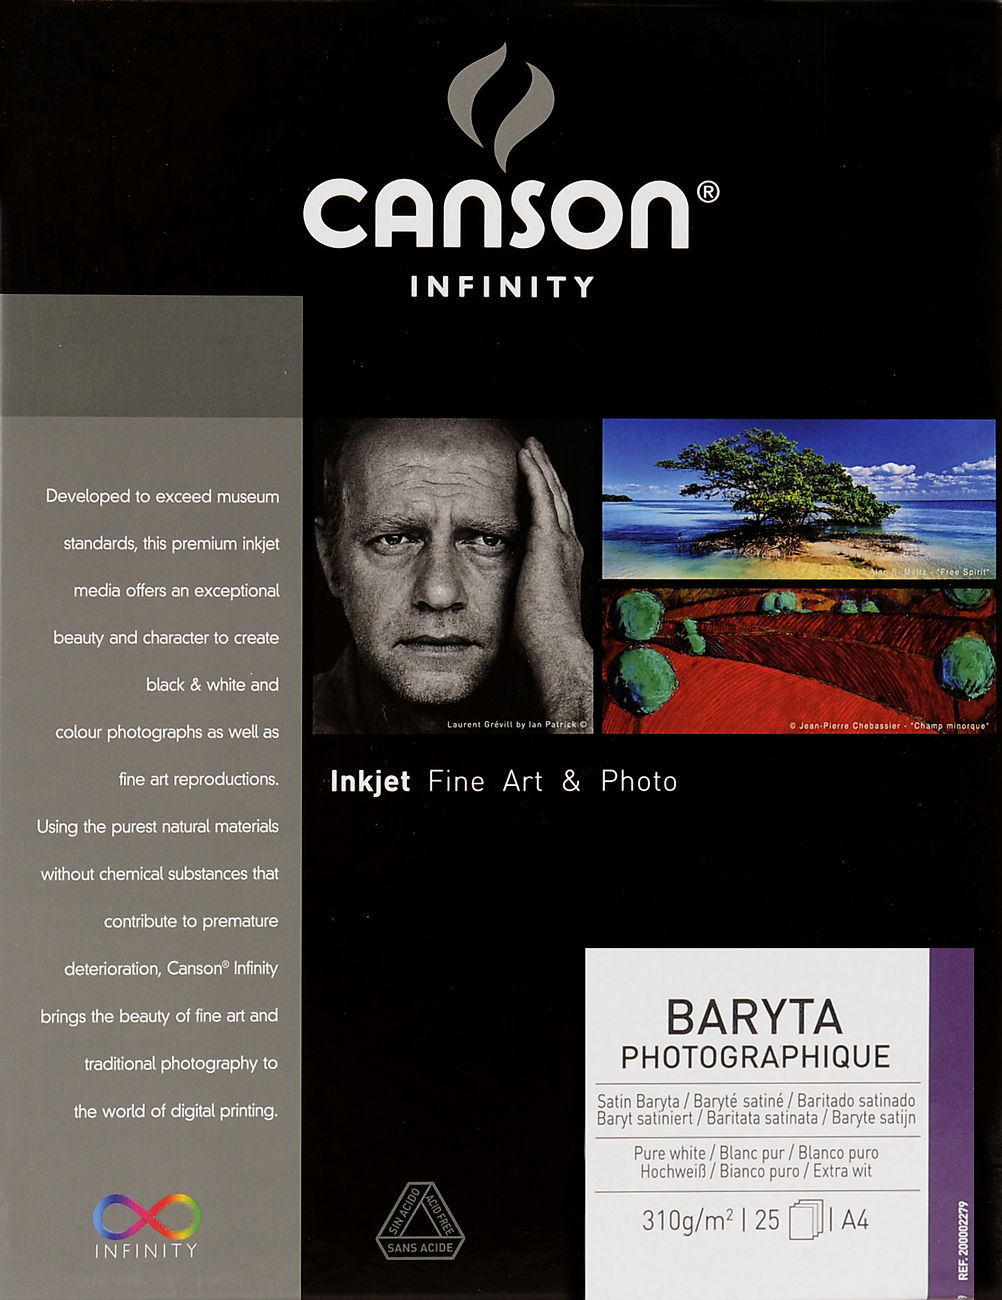 Canson Infinity Baryta Photographique 310gsm Image